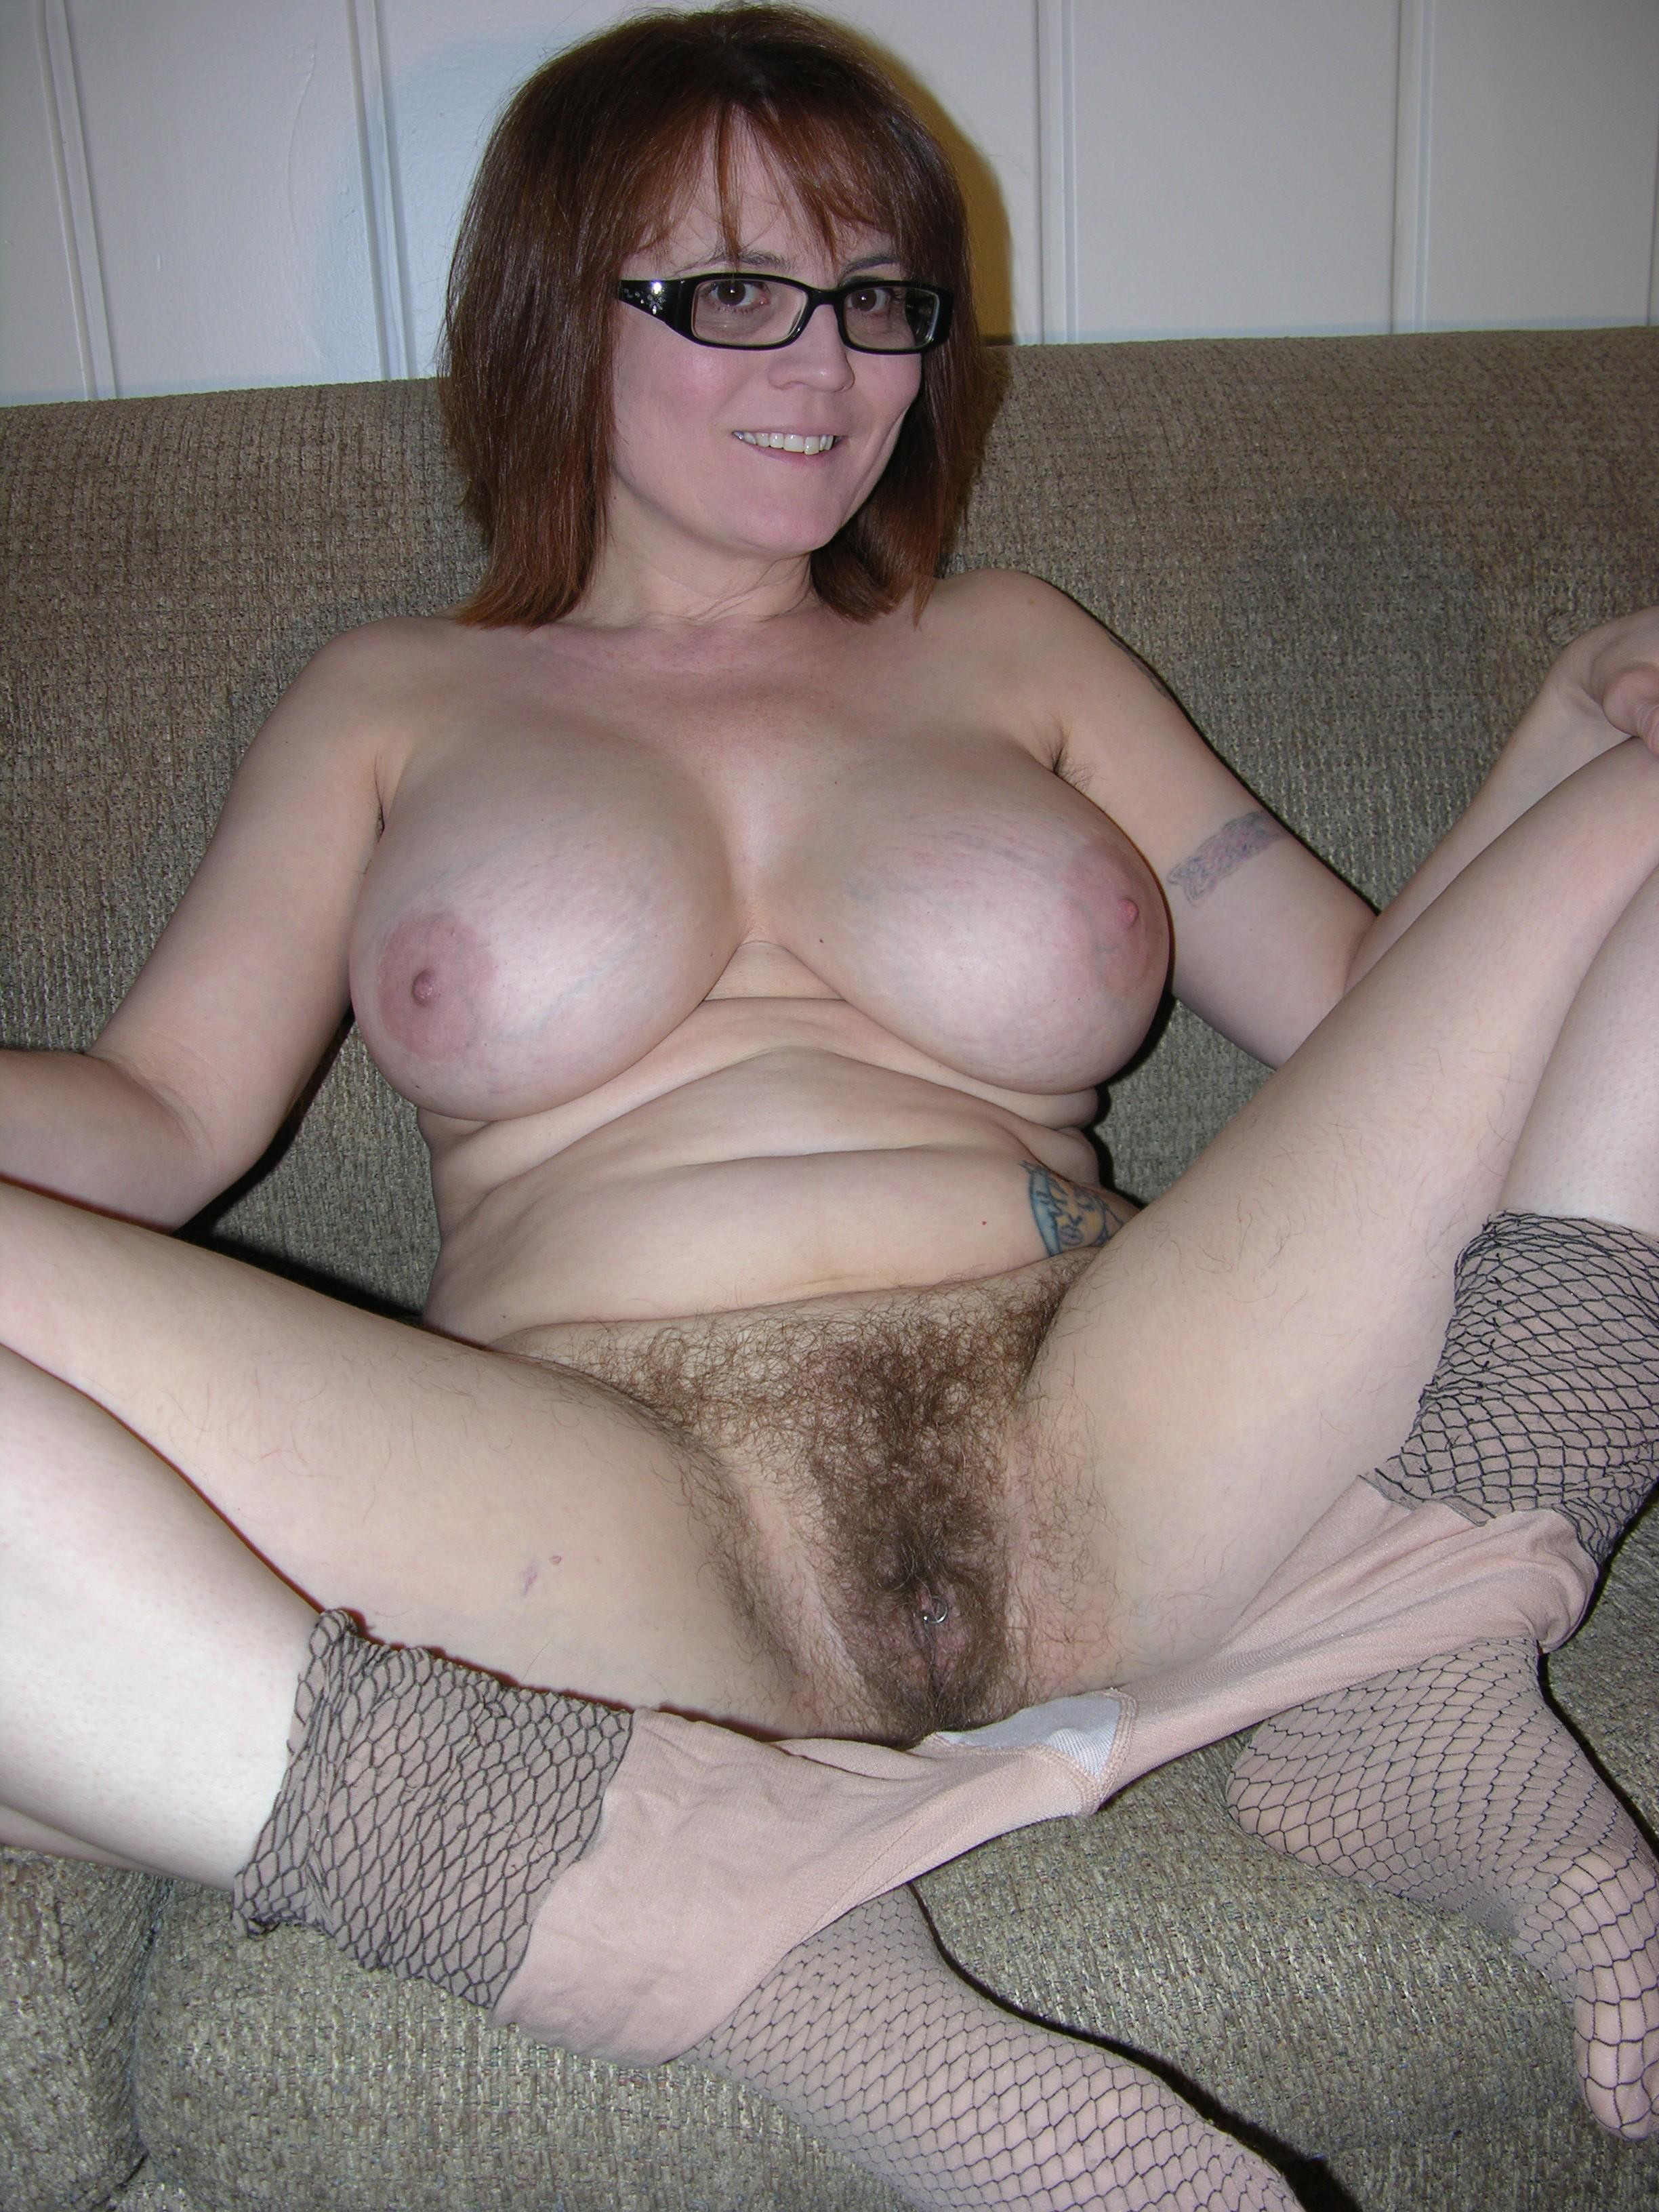 Hairy amateur nude on bed